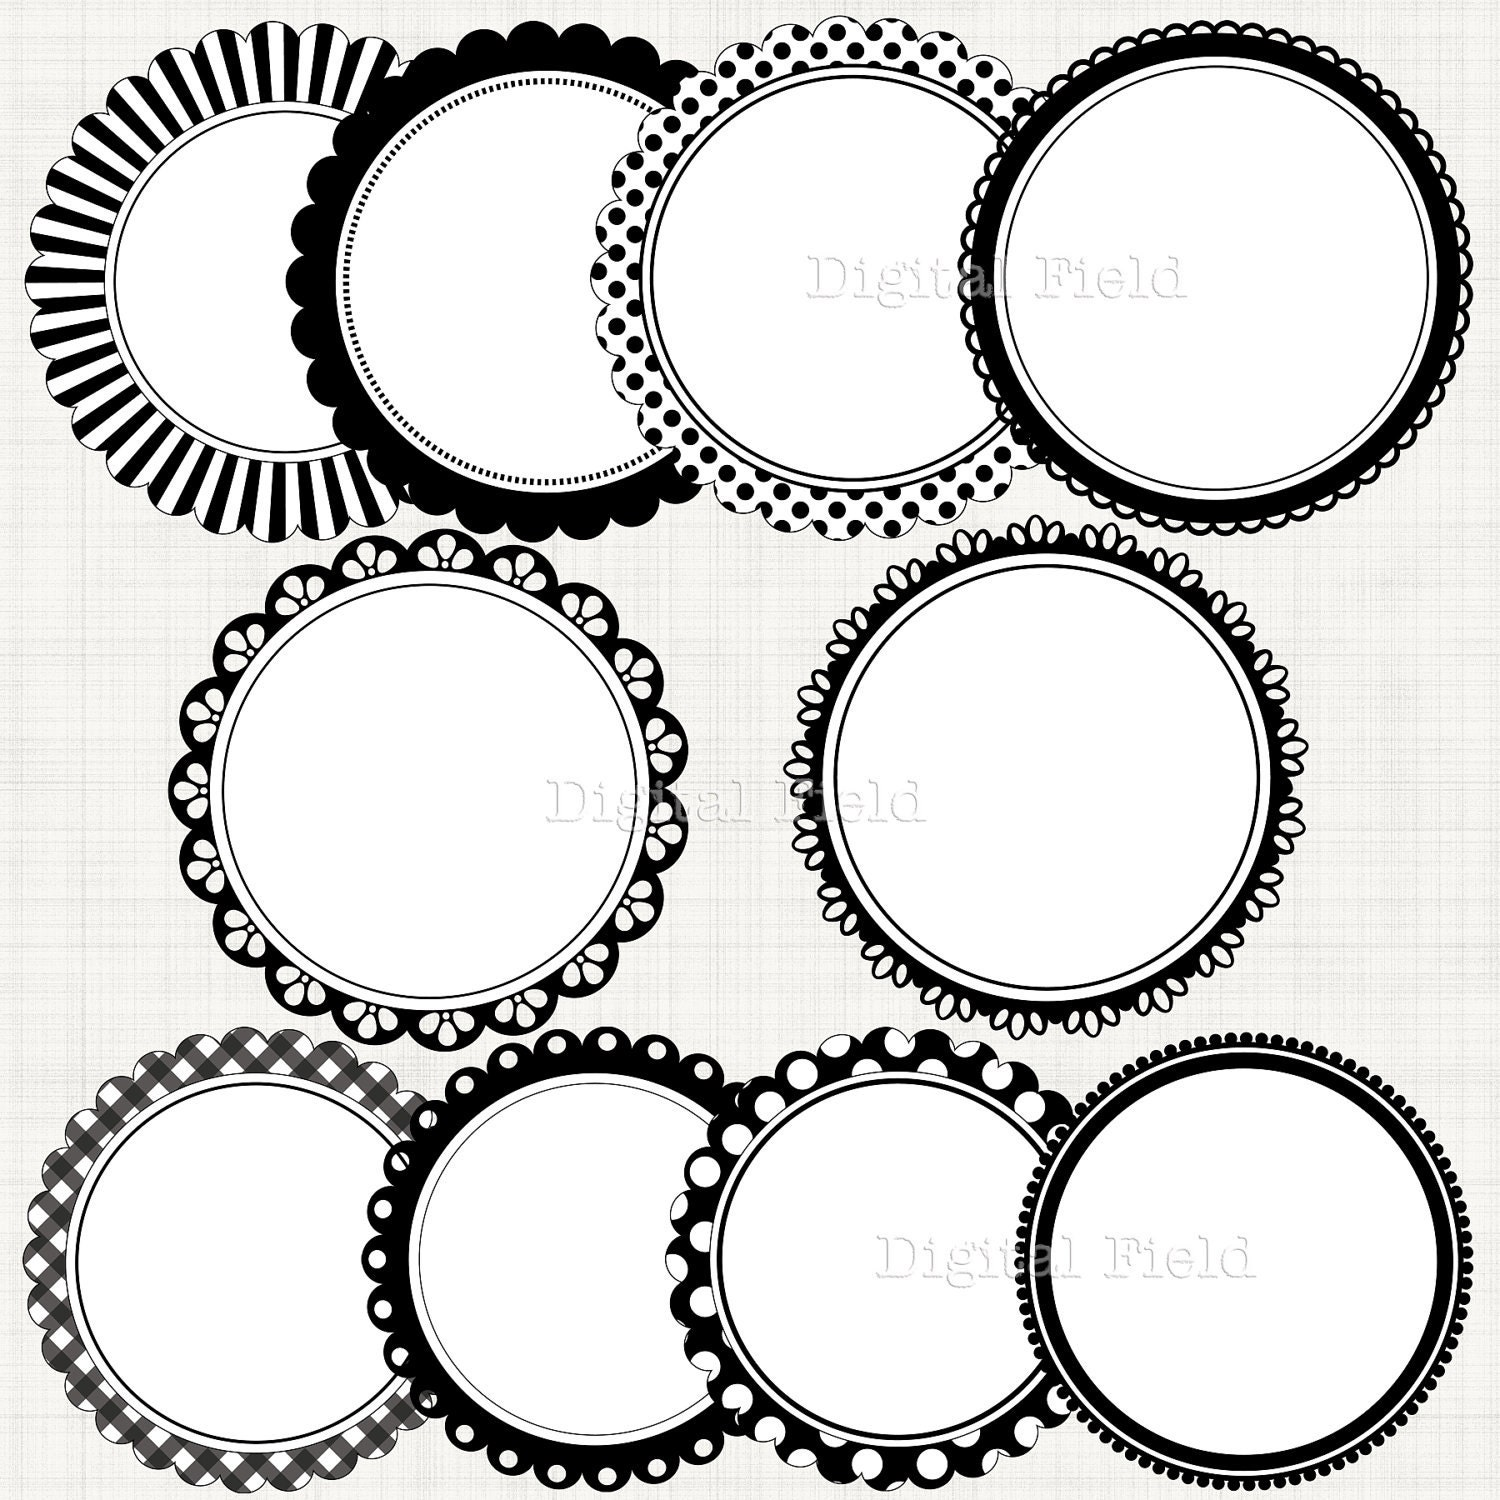 Black&white scalloped circle frames borders clip art set